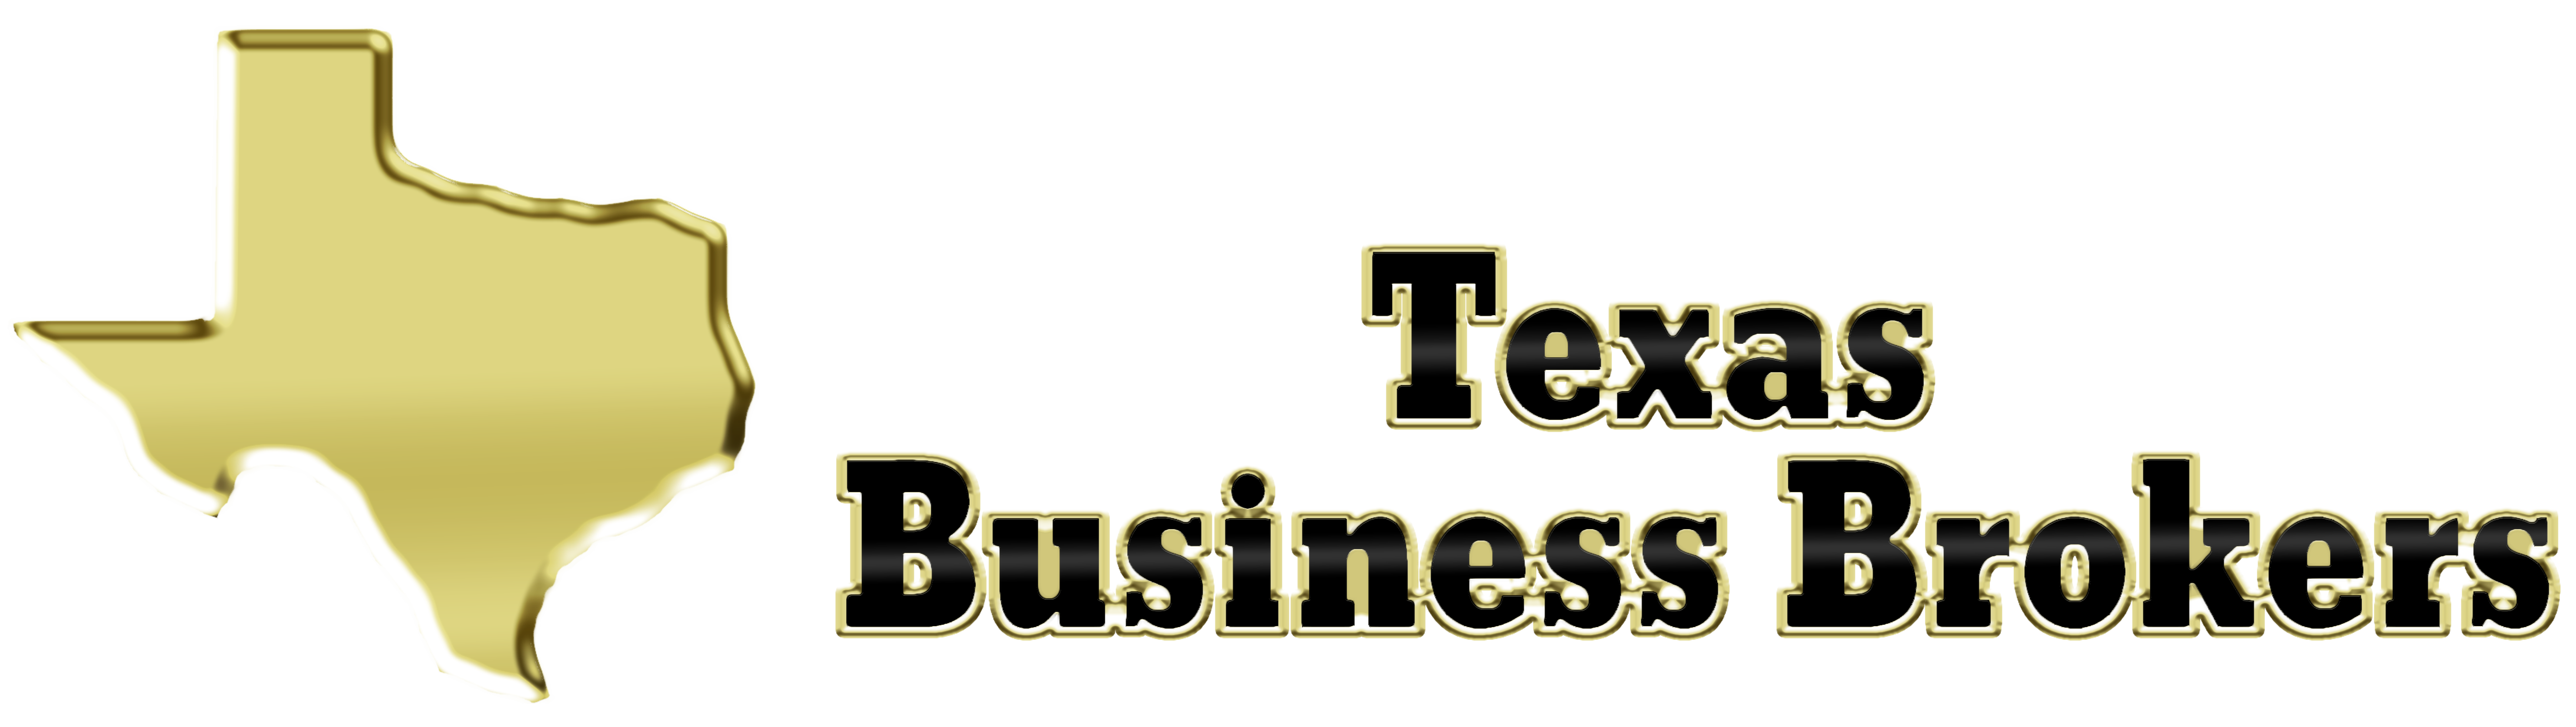 Texas Business Brokers